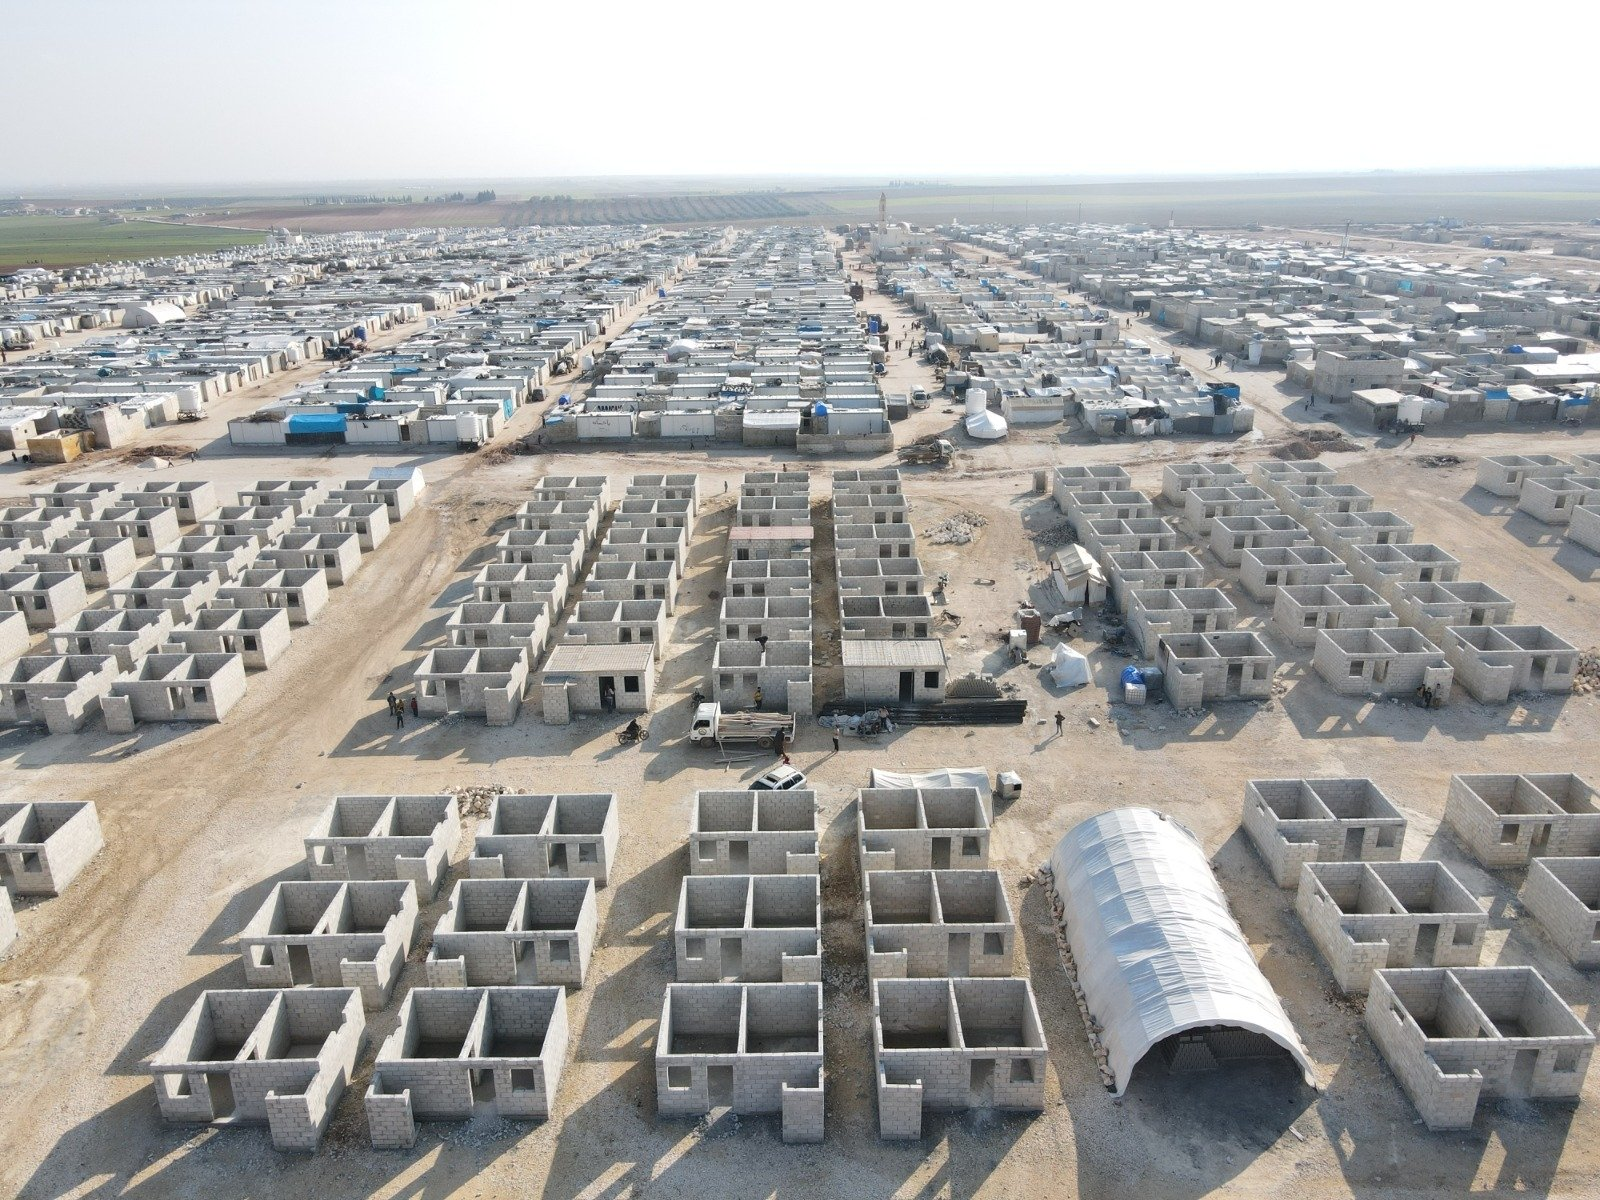 Three-hundred briquette houses in the new town are expected to be completed by the end of this month in northern Syria's Azaz, March 1, 2021. (AA Photo)